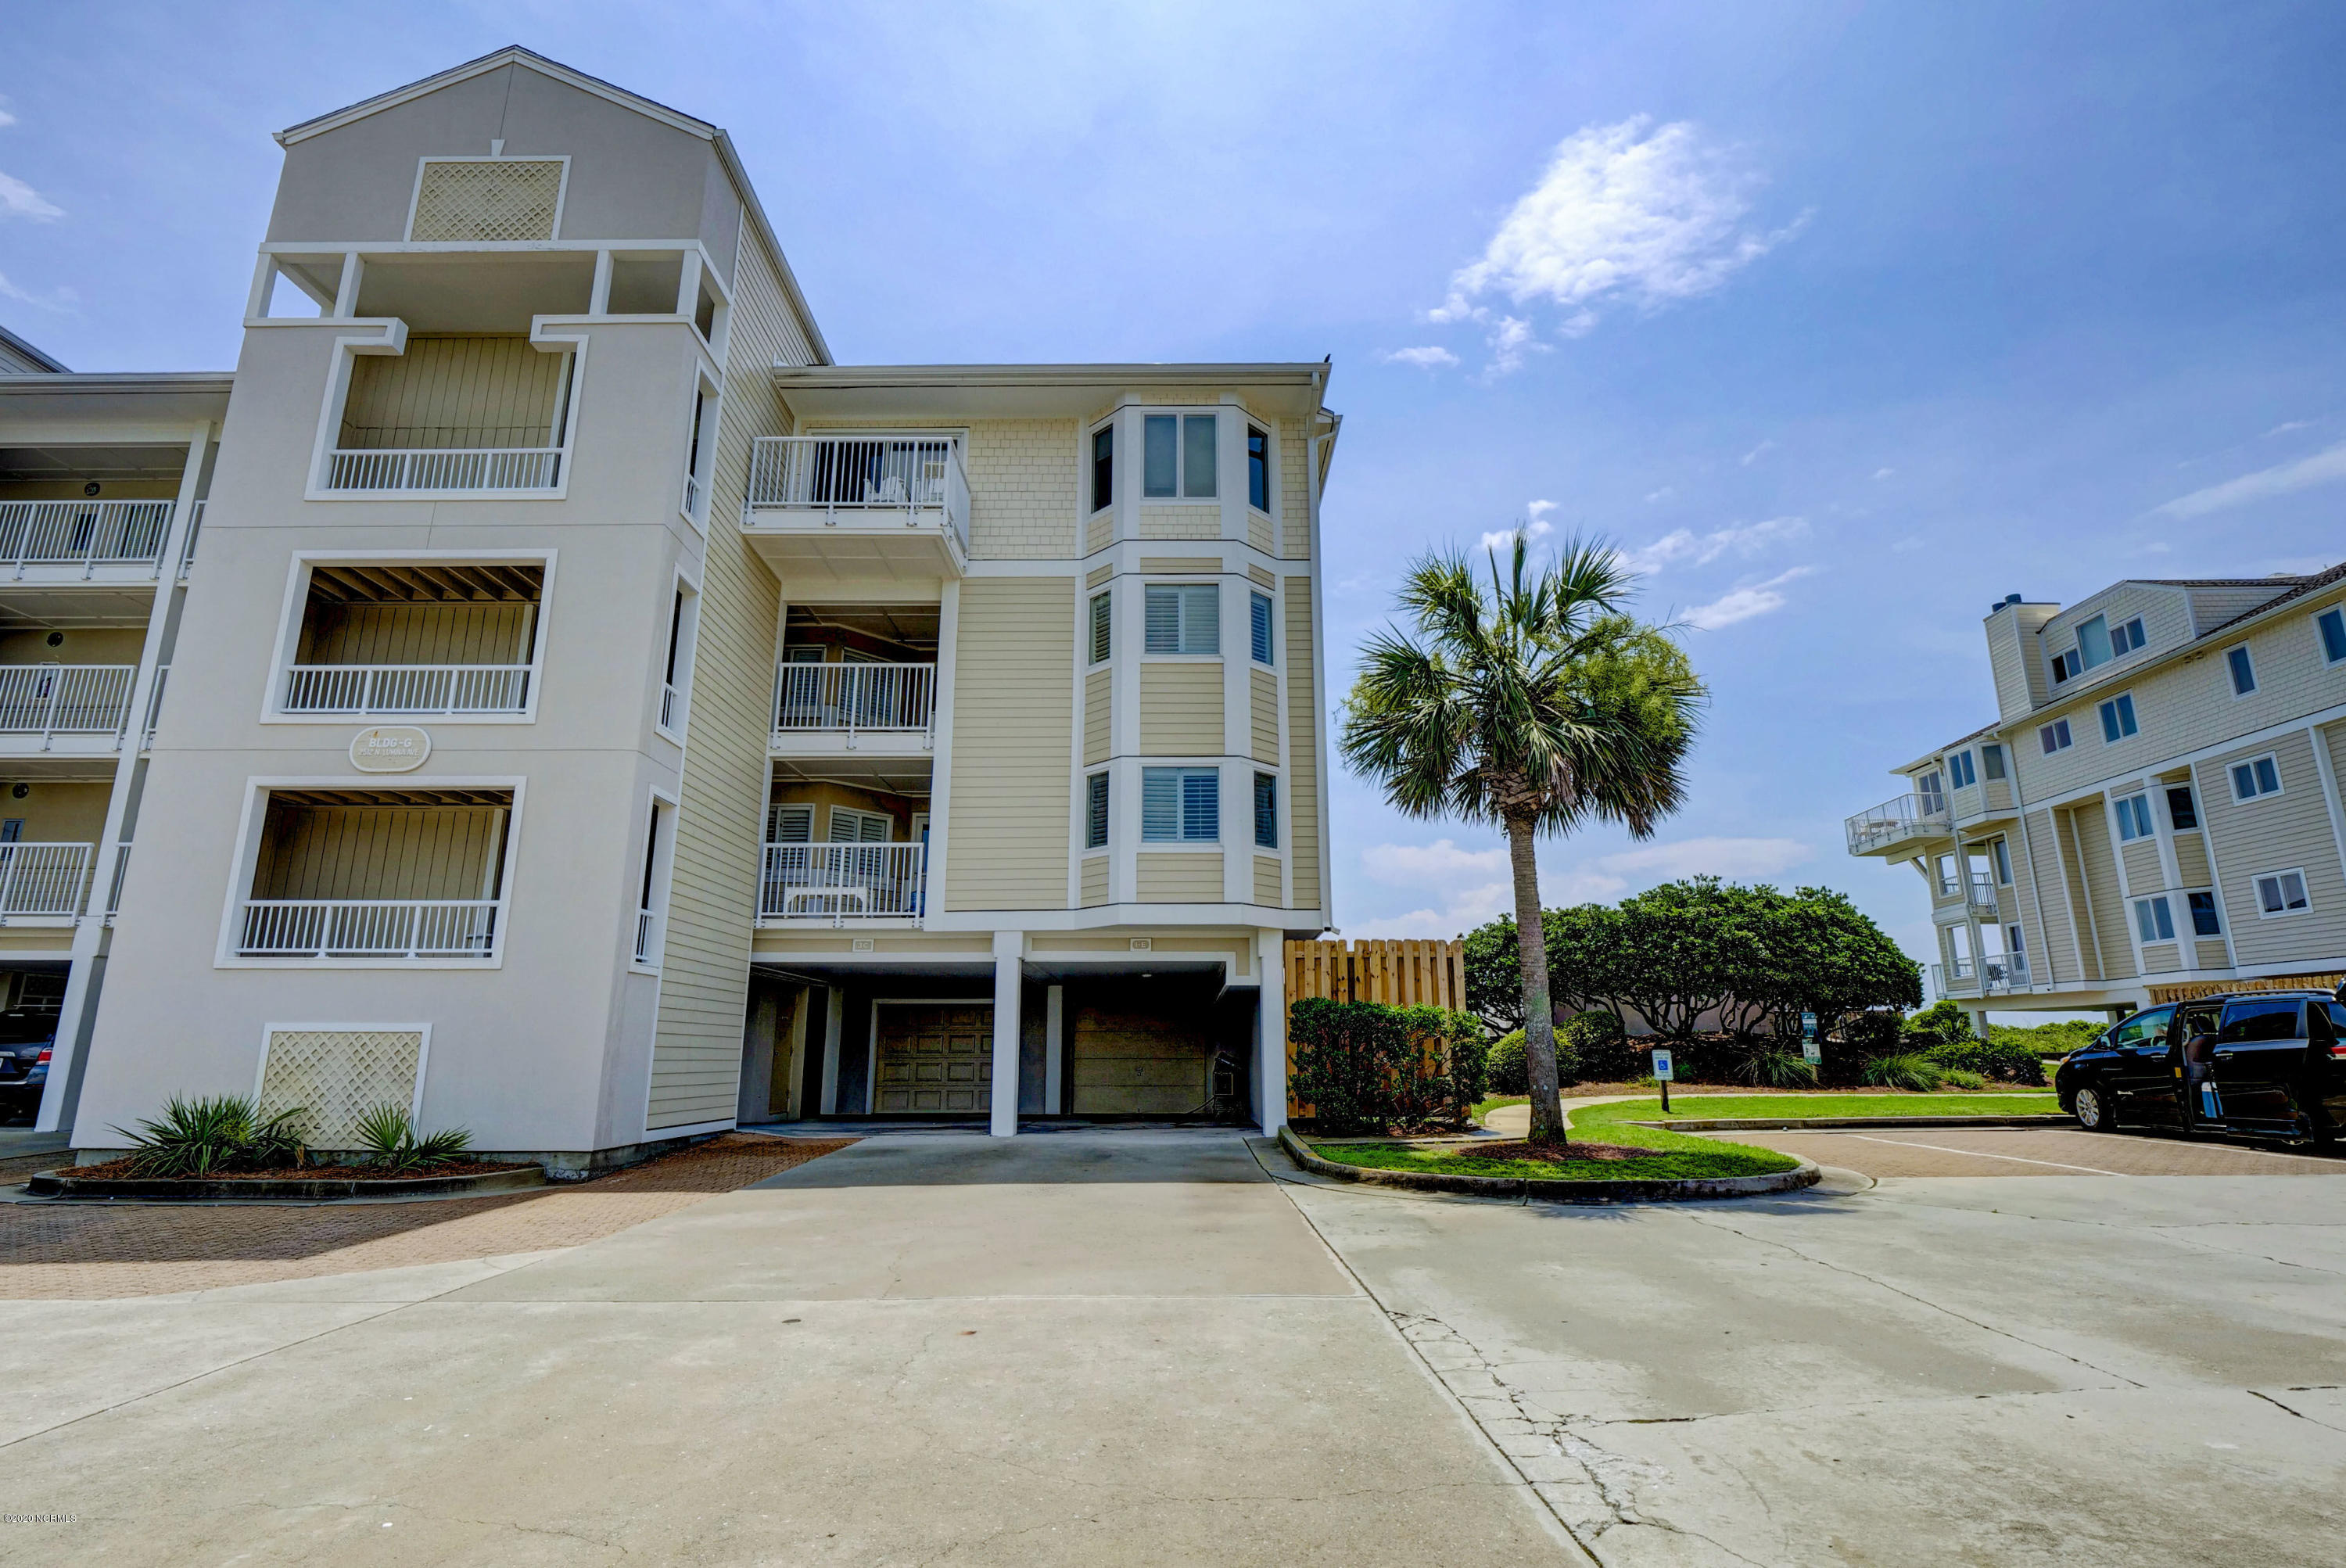 2512 N Lumina Avenue UNIT Bldg G - 1e Wrightsville Beach, NC 28480